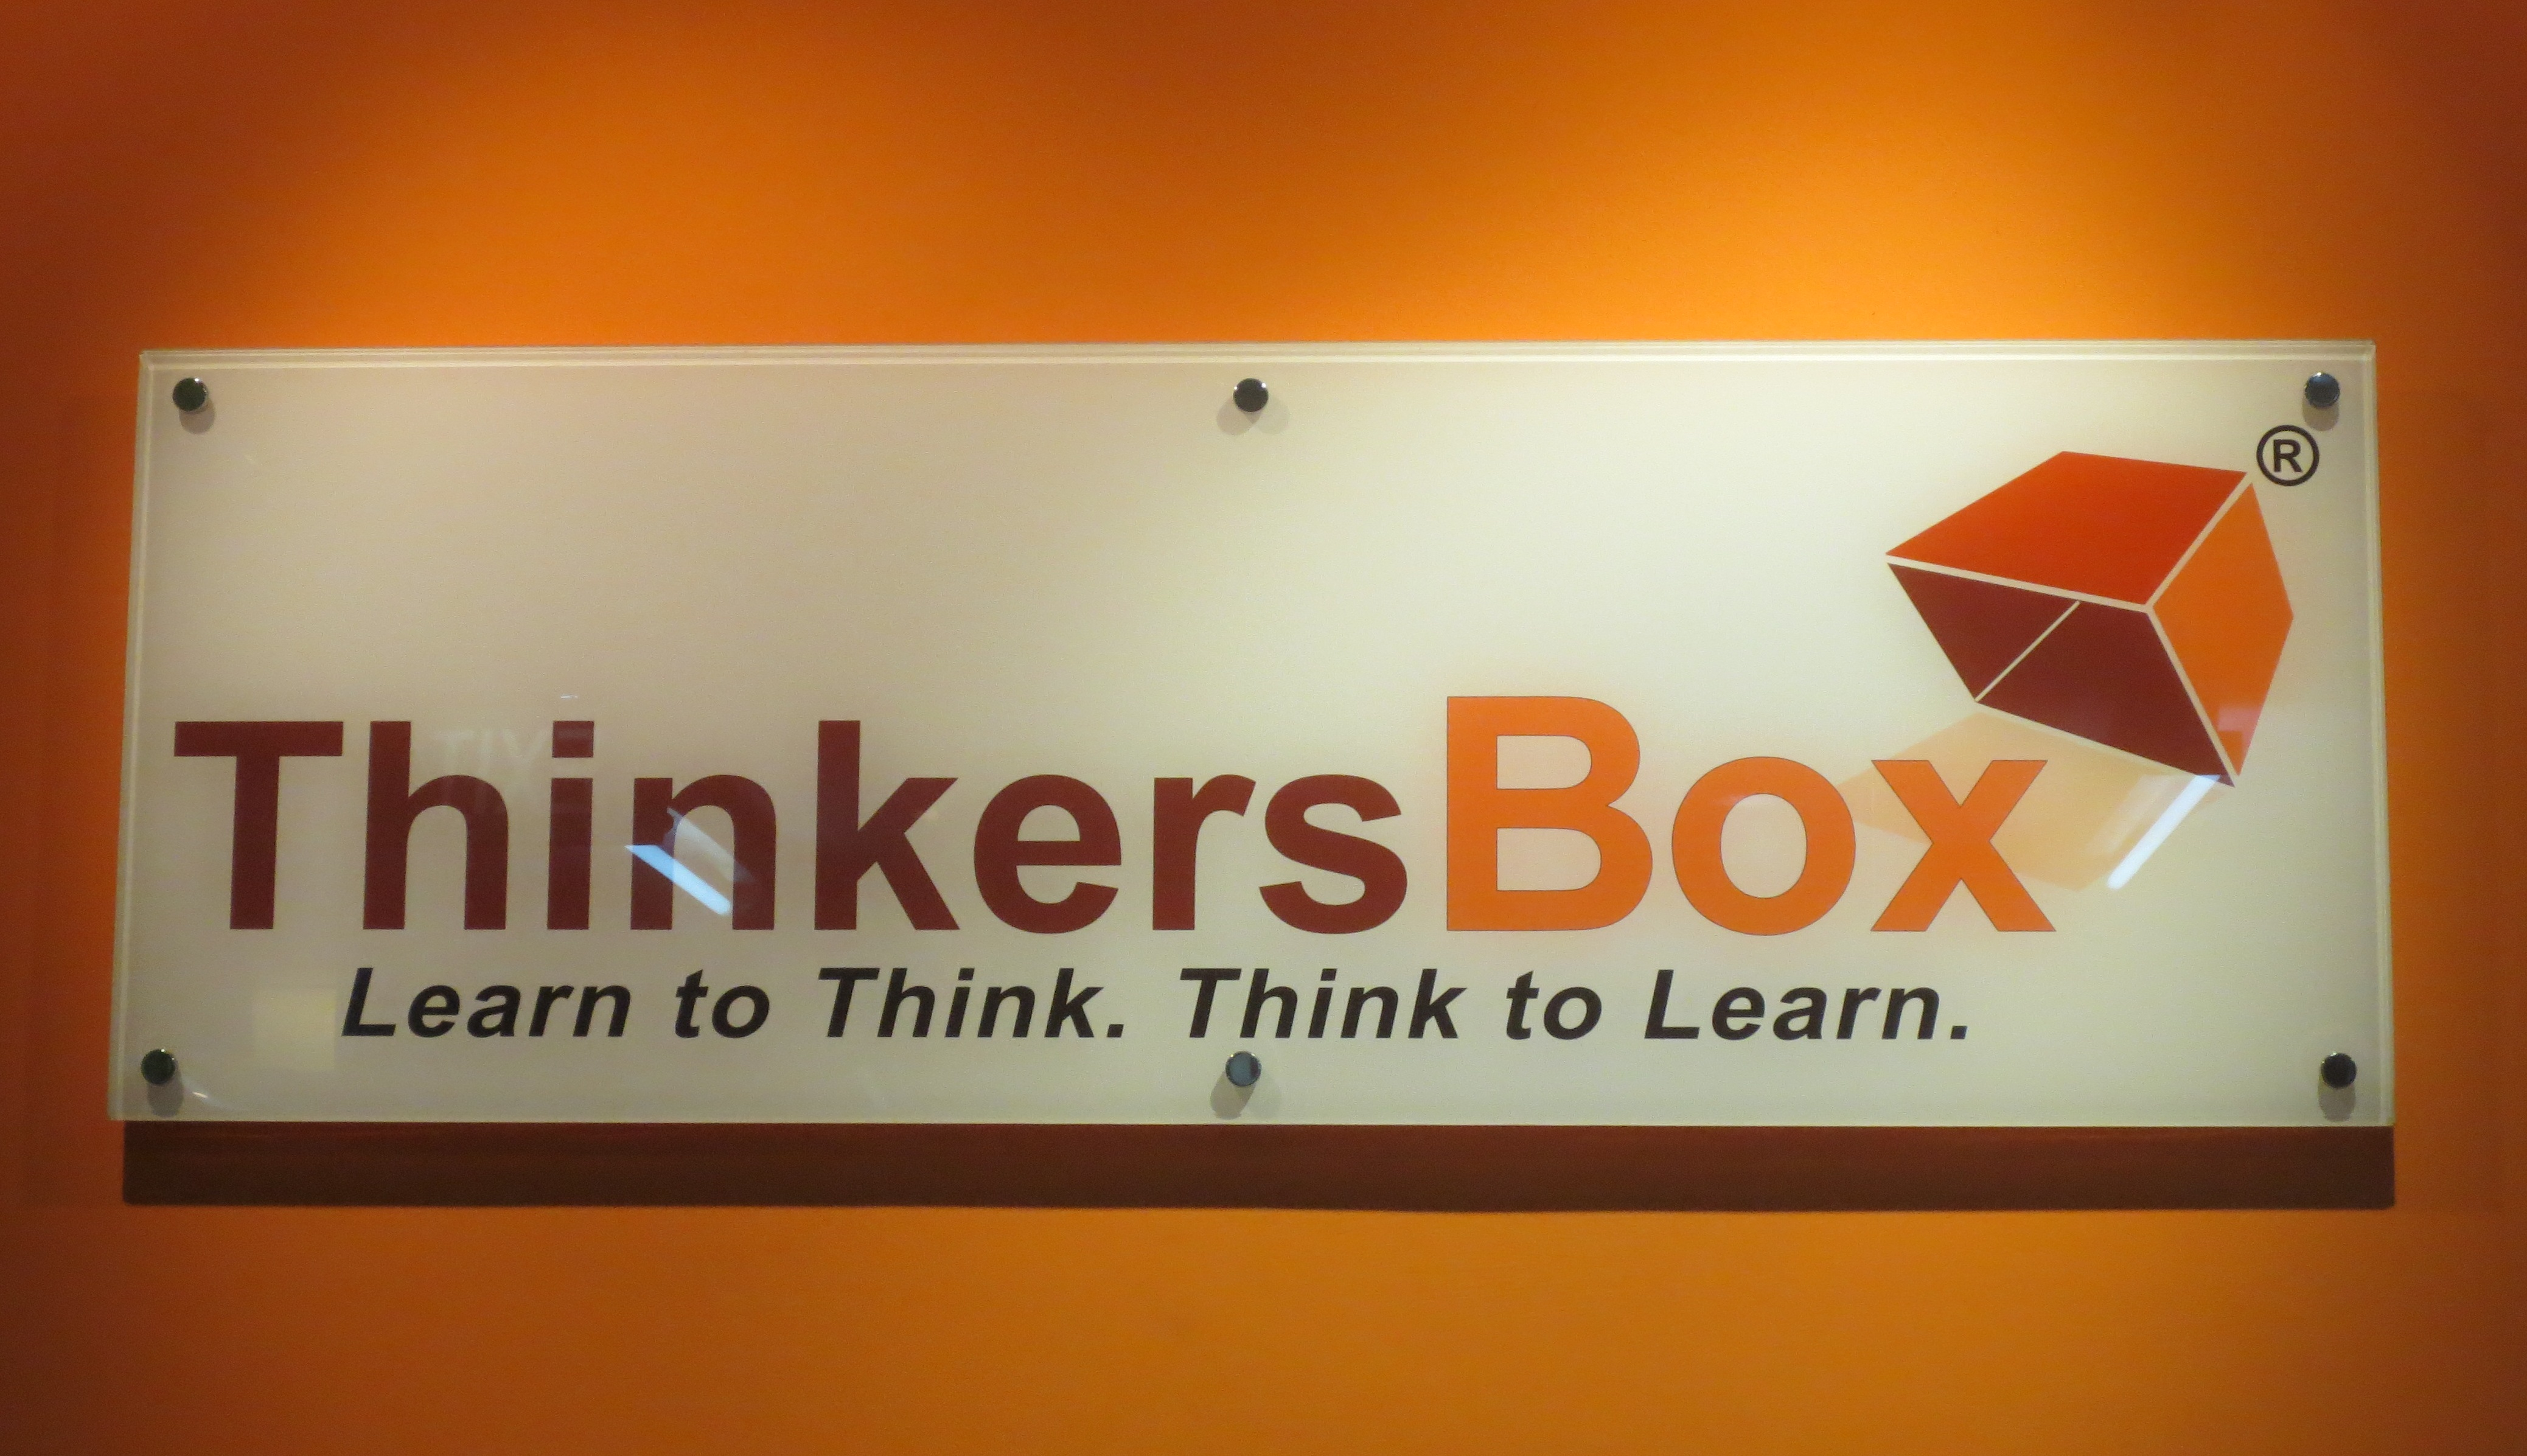 ThinkersBox helps children learn to think and think to learn